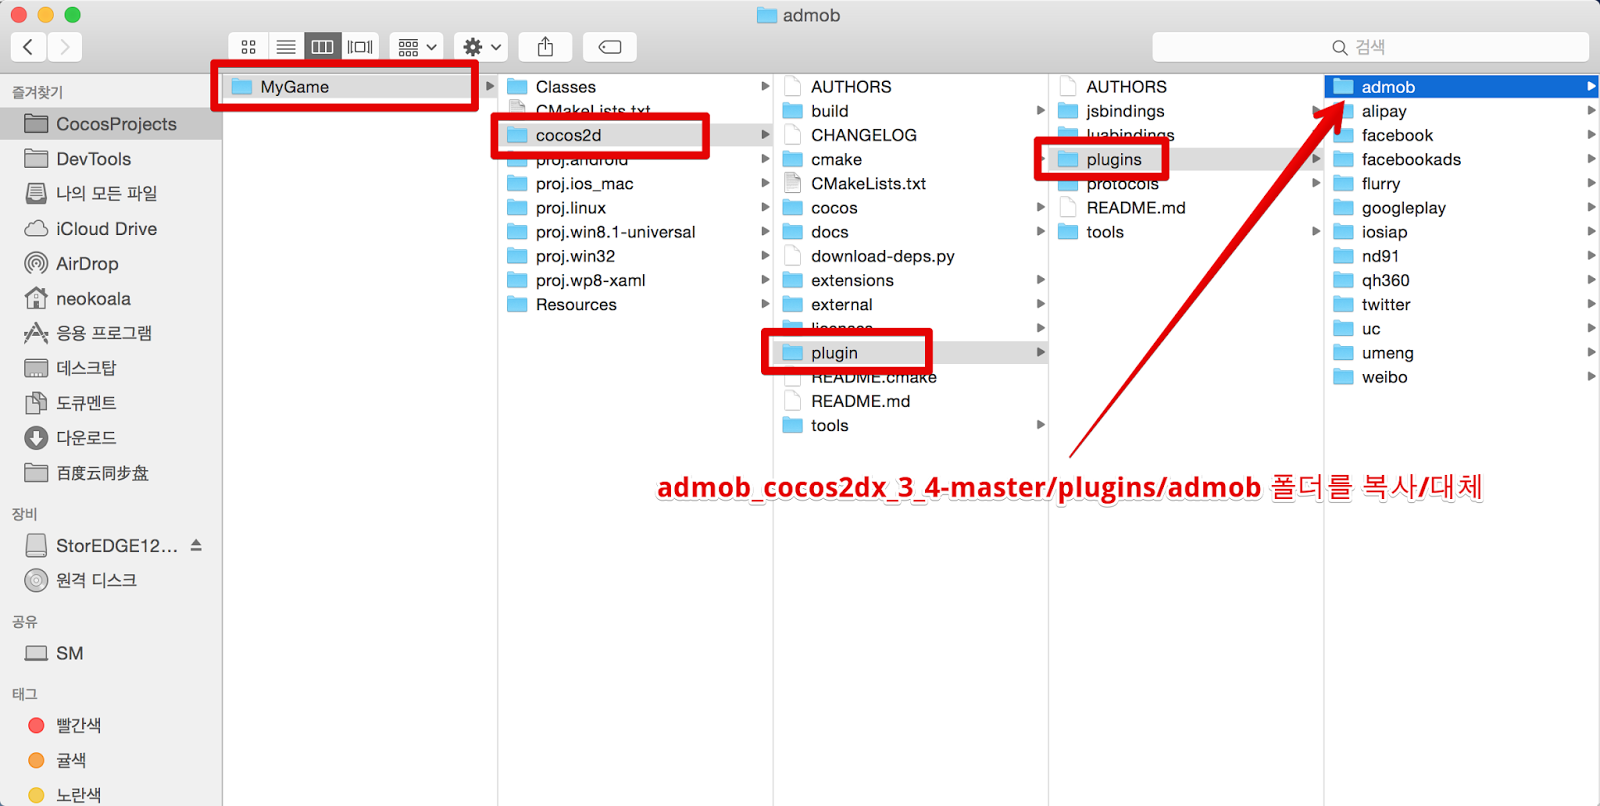 Cocos2d-x Master: Admob integration in Cocos2d-x v3 4 with